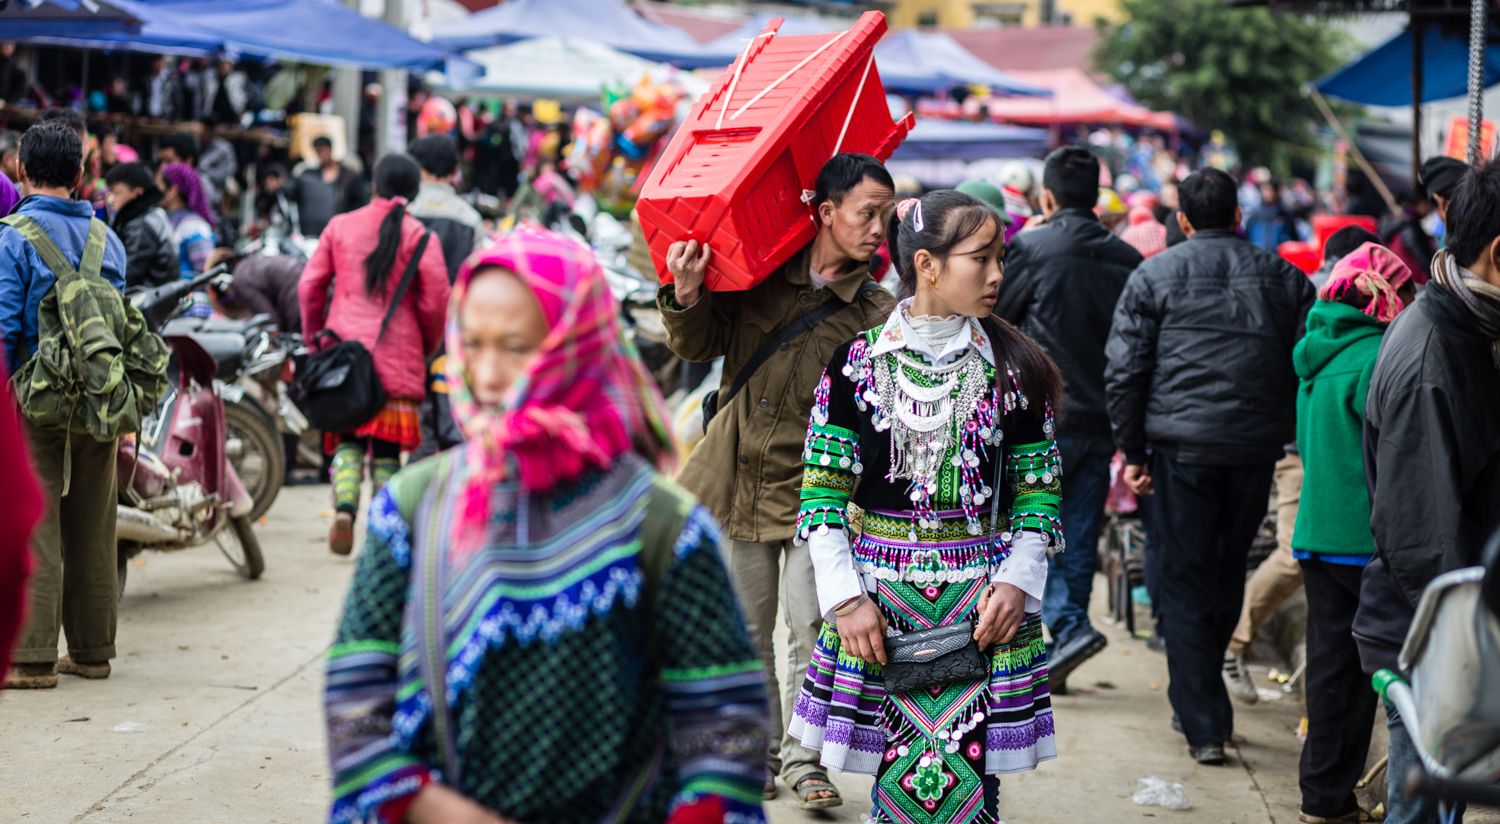 Villagers from all over the area flock to the Sunday Bac Ha market in Lao Coi Province. In addition to shopping for commodities ranging from meat to clothing, the market is very much a social occasion for the Flower Hmong, who go to the market dressed to impress